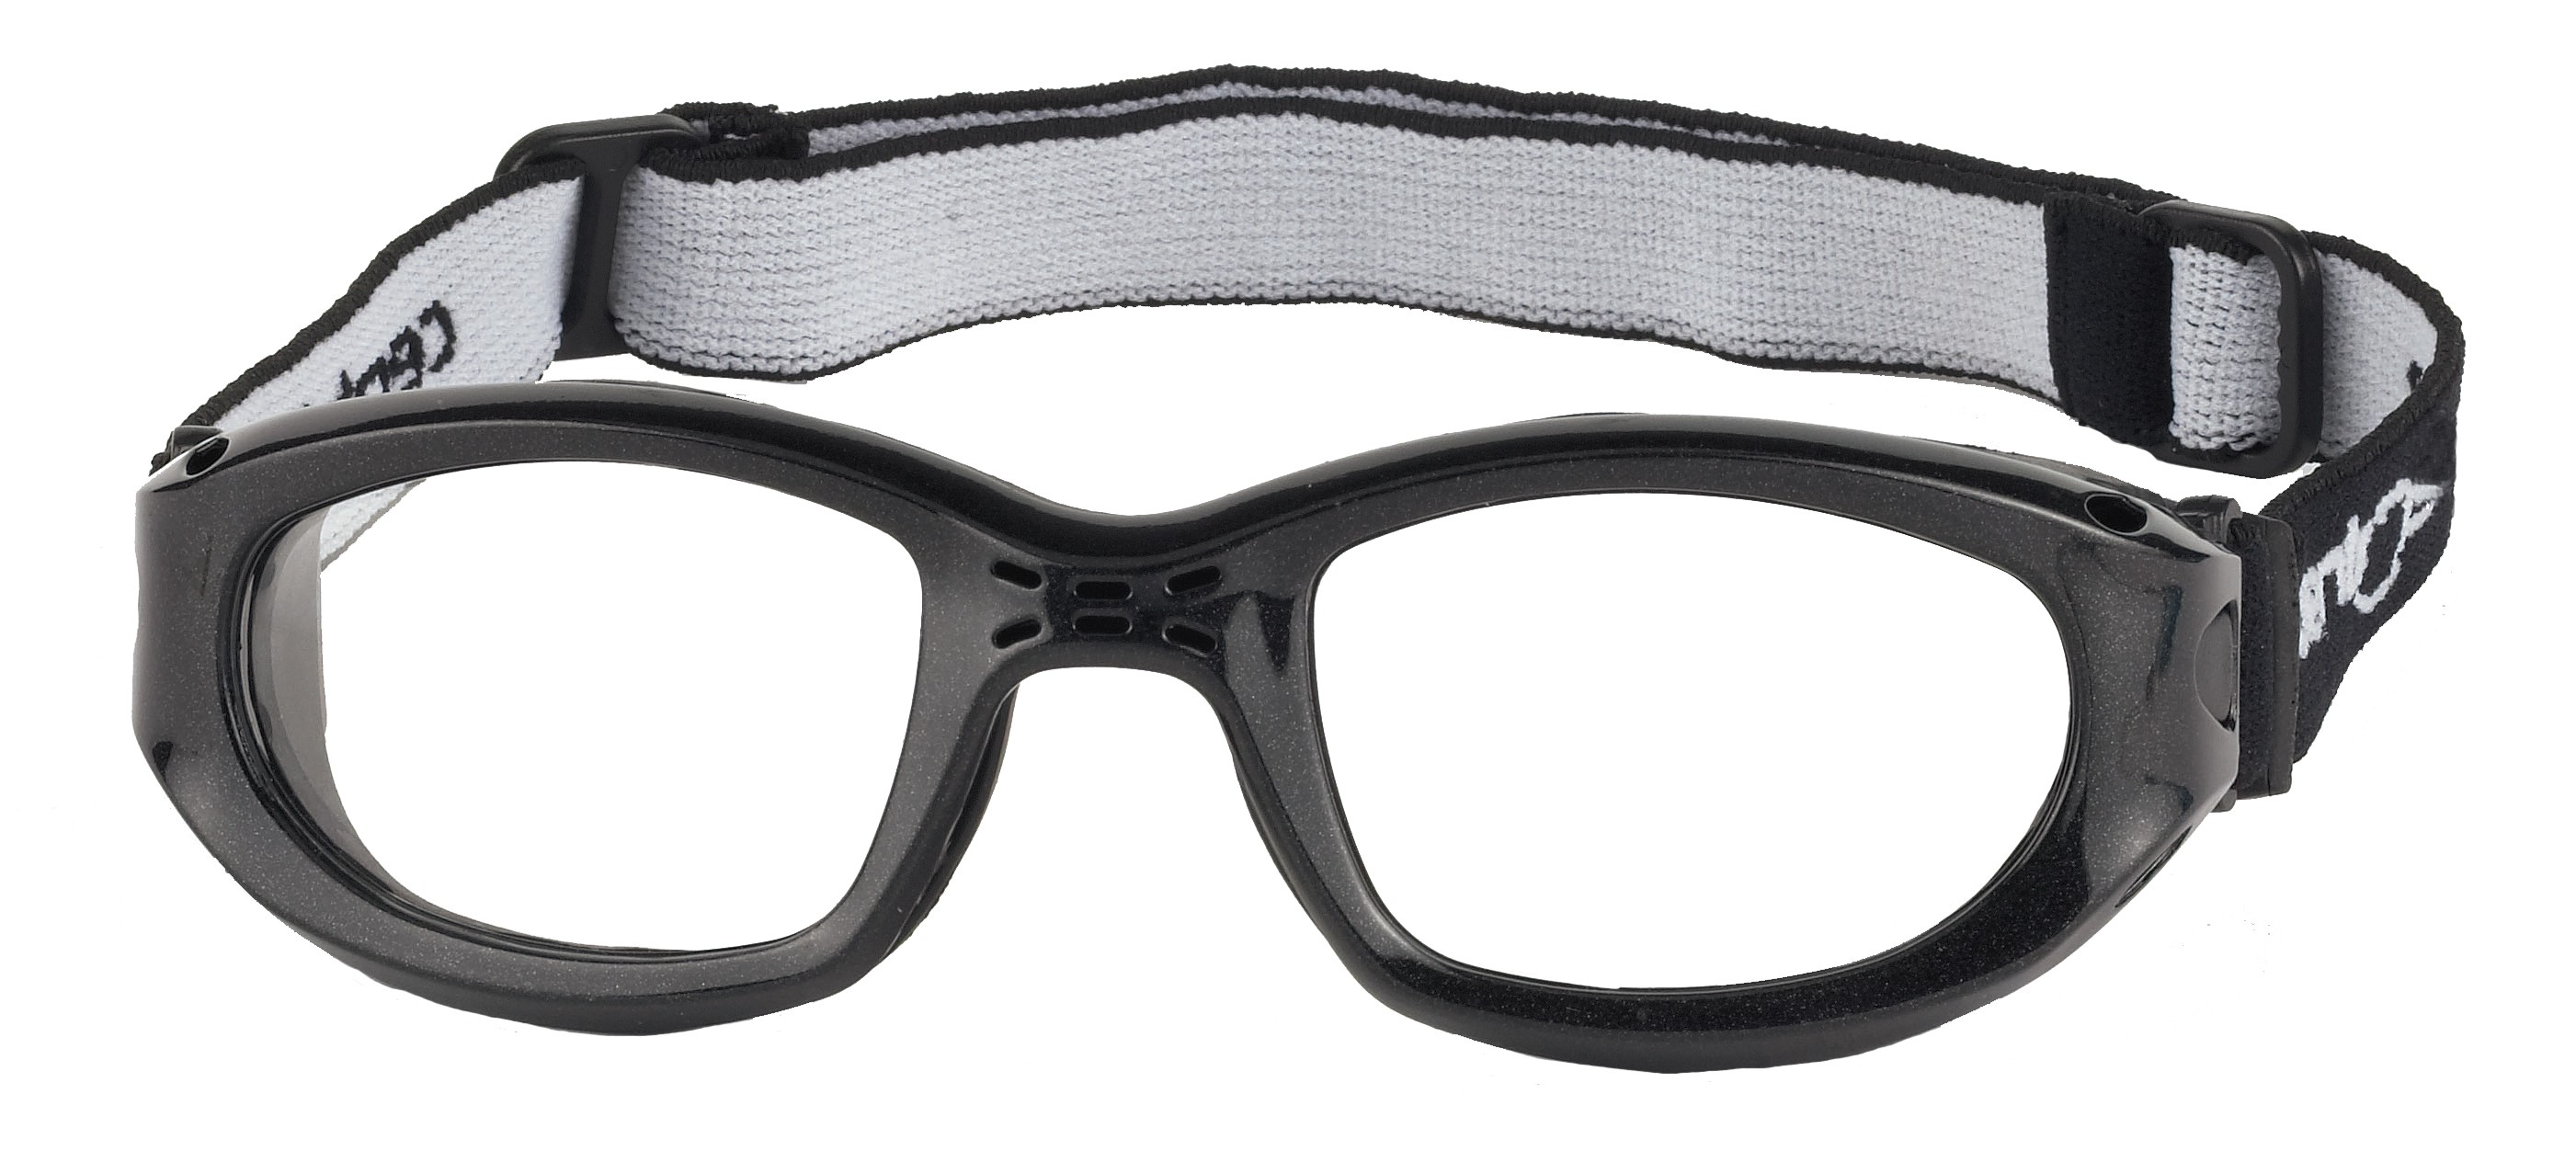 Centrostyle Sports Eyeglasses